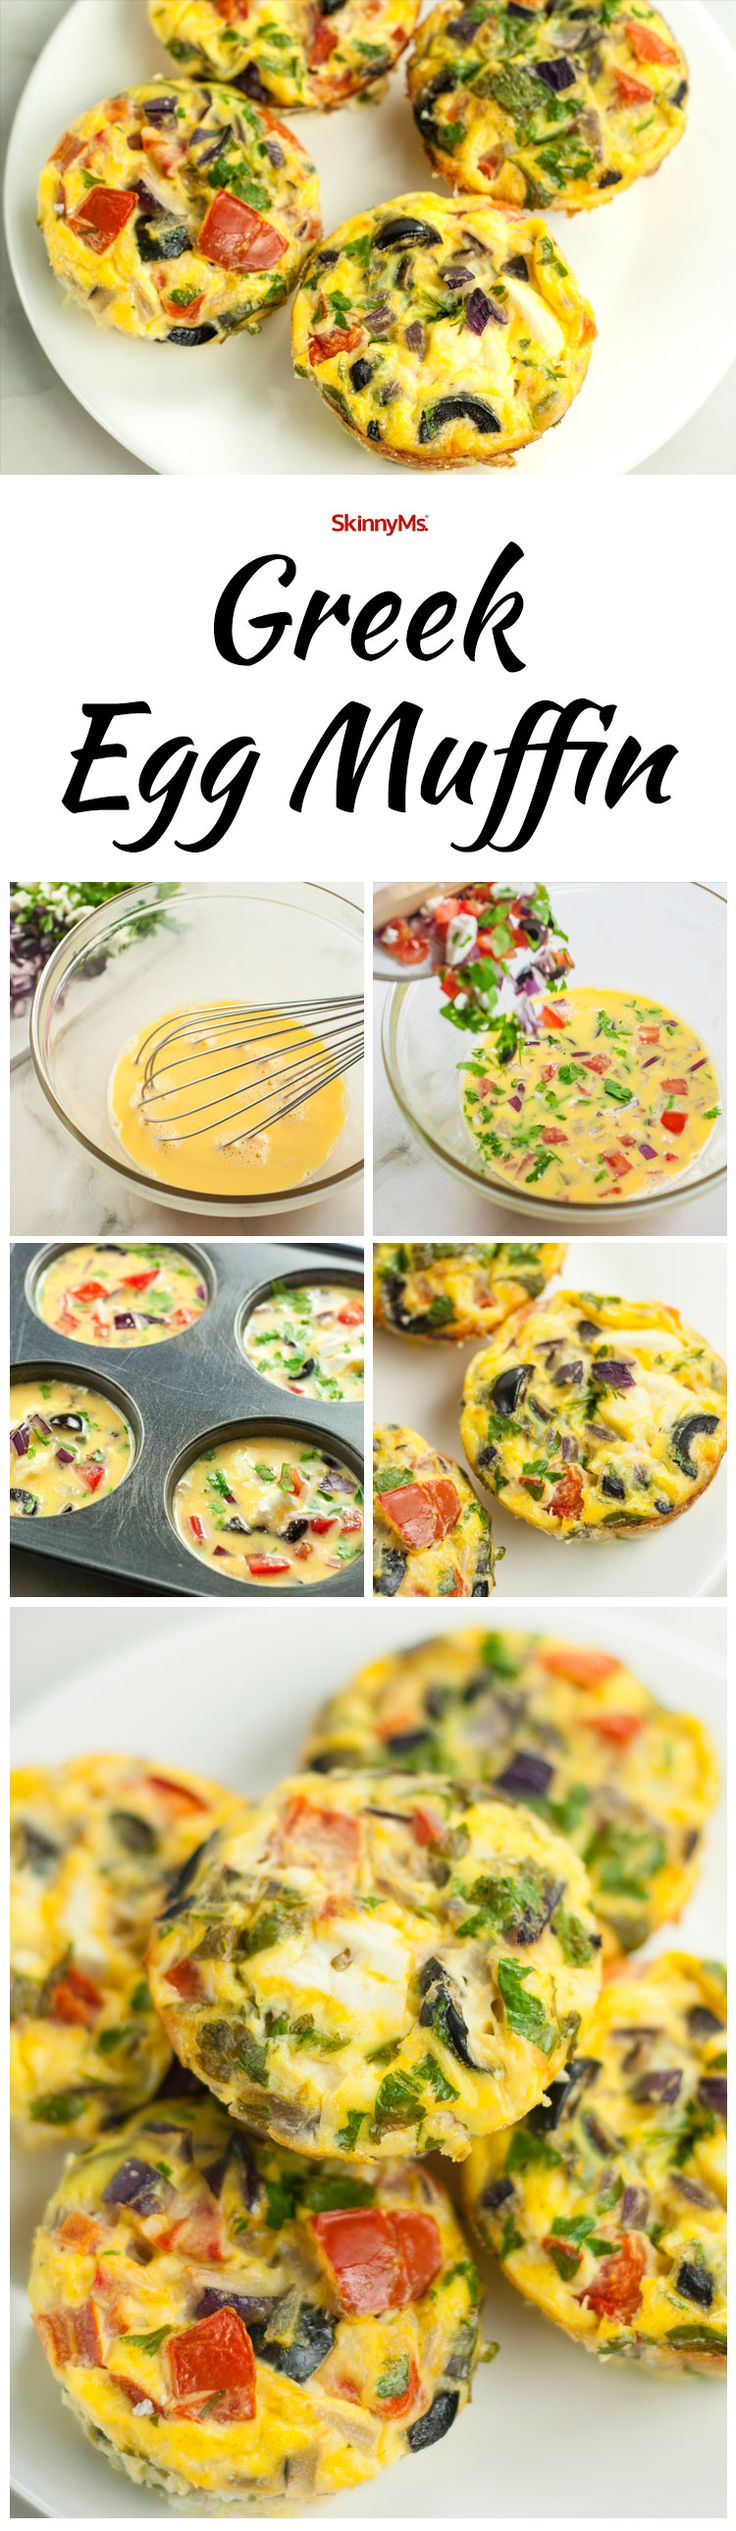 Rise and Shine With These Greek Egg Muffins! #breakfast #healthy